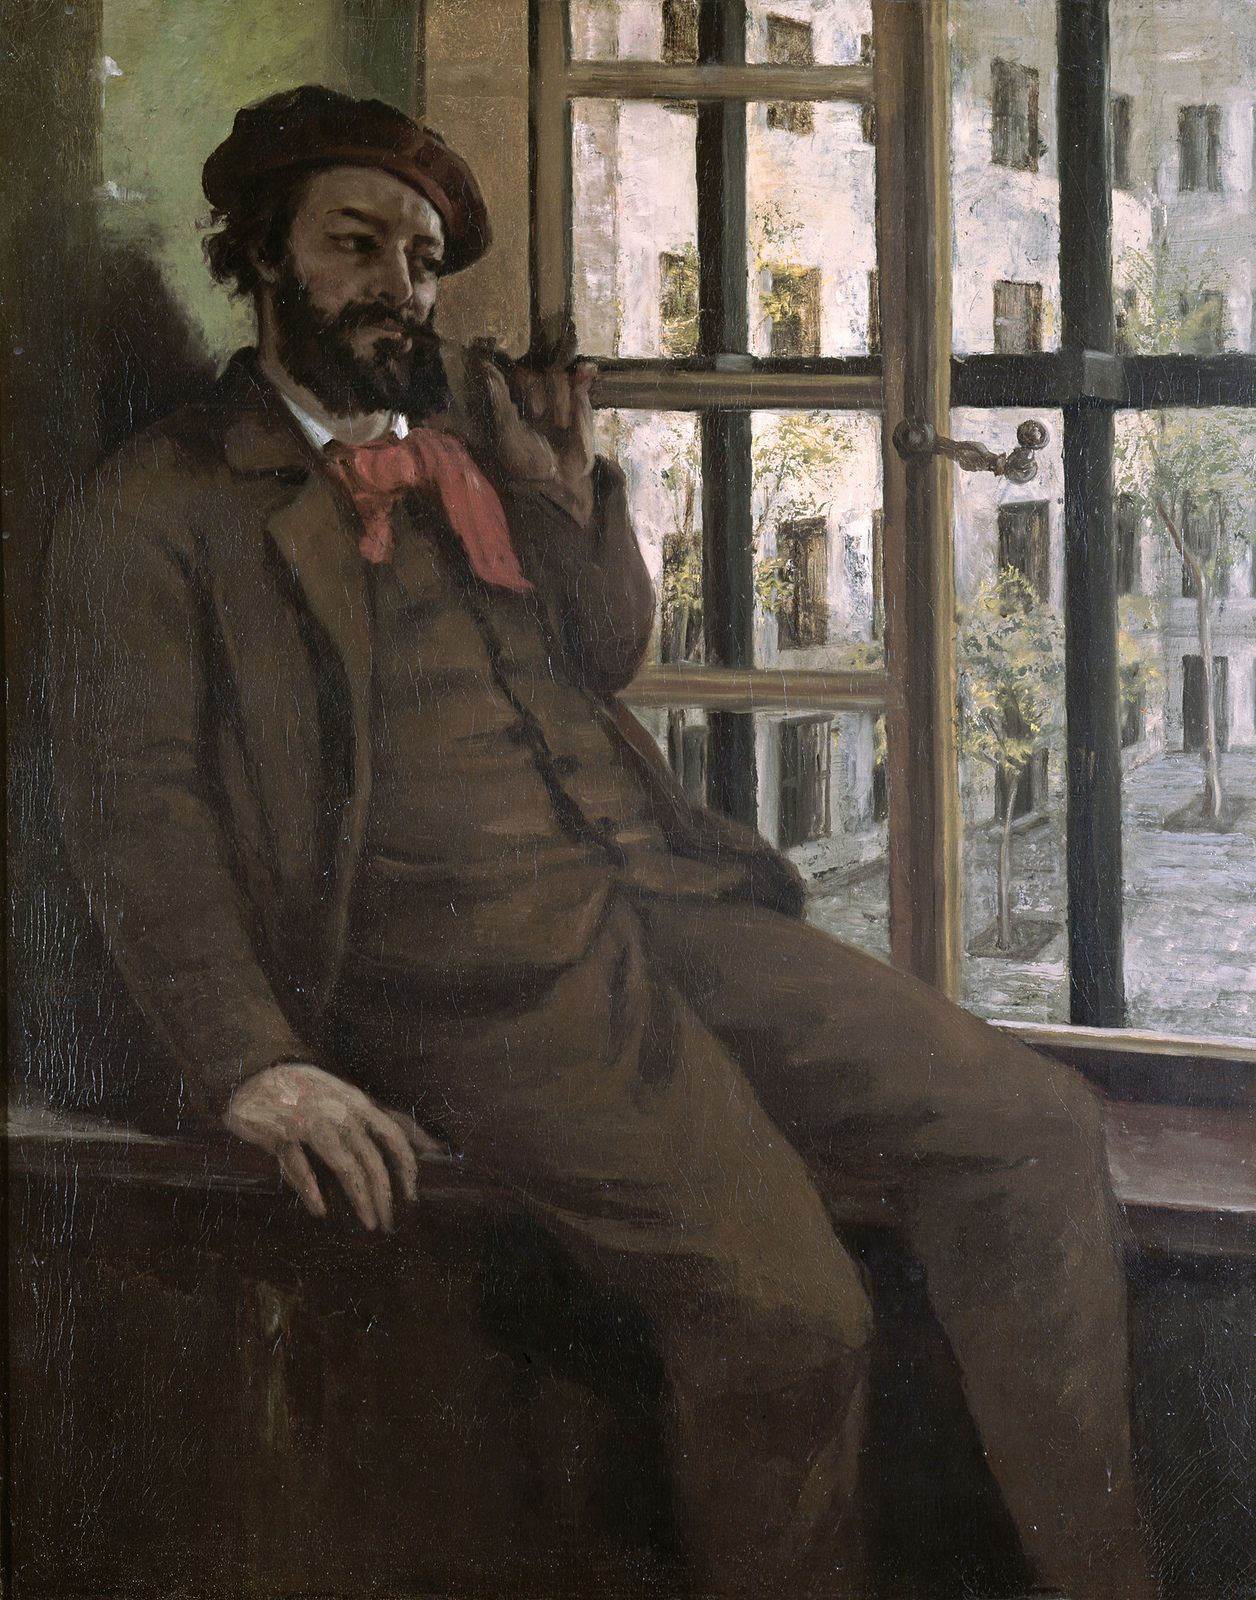 https://flic.kr/p/CnWYfe | Gustave Courbet - Self Portrait at Sainte-Pélagie [1871] | Courbet's commitment to politics led to a period of imprisonment. He immortalised this part of his life in Self-Portrait at Sainte-Pélagie. Immediately after his arrest in June 1871, he was accused of having taken part in the Paris Commune, the last of the nineteenth-century revolutions in France. During his trial, Courbet was accused of having taken part in the destruction of the colonne Vendôme, which…